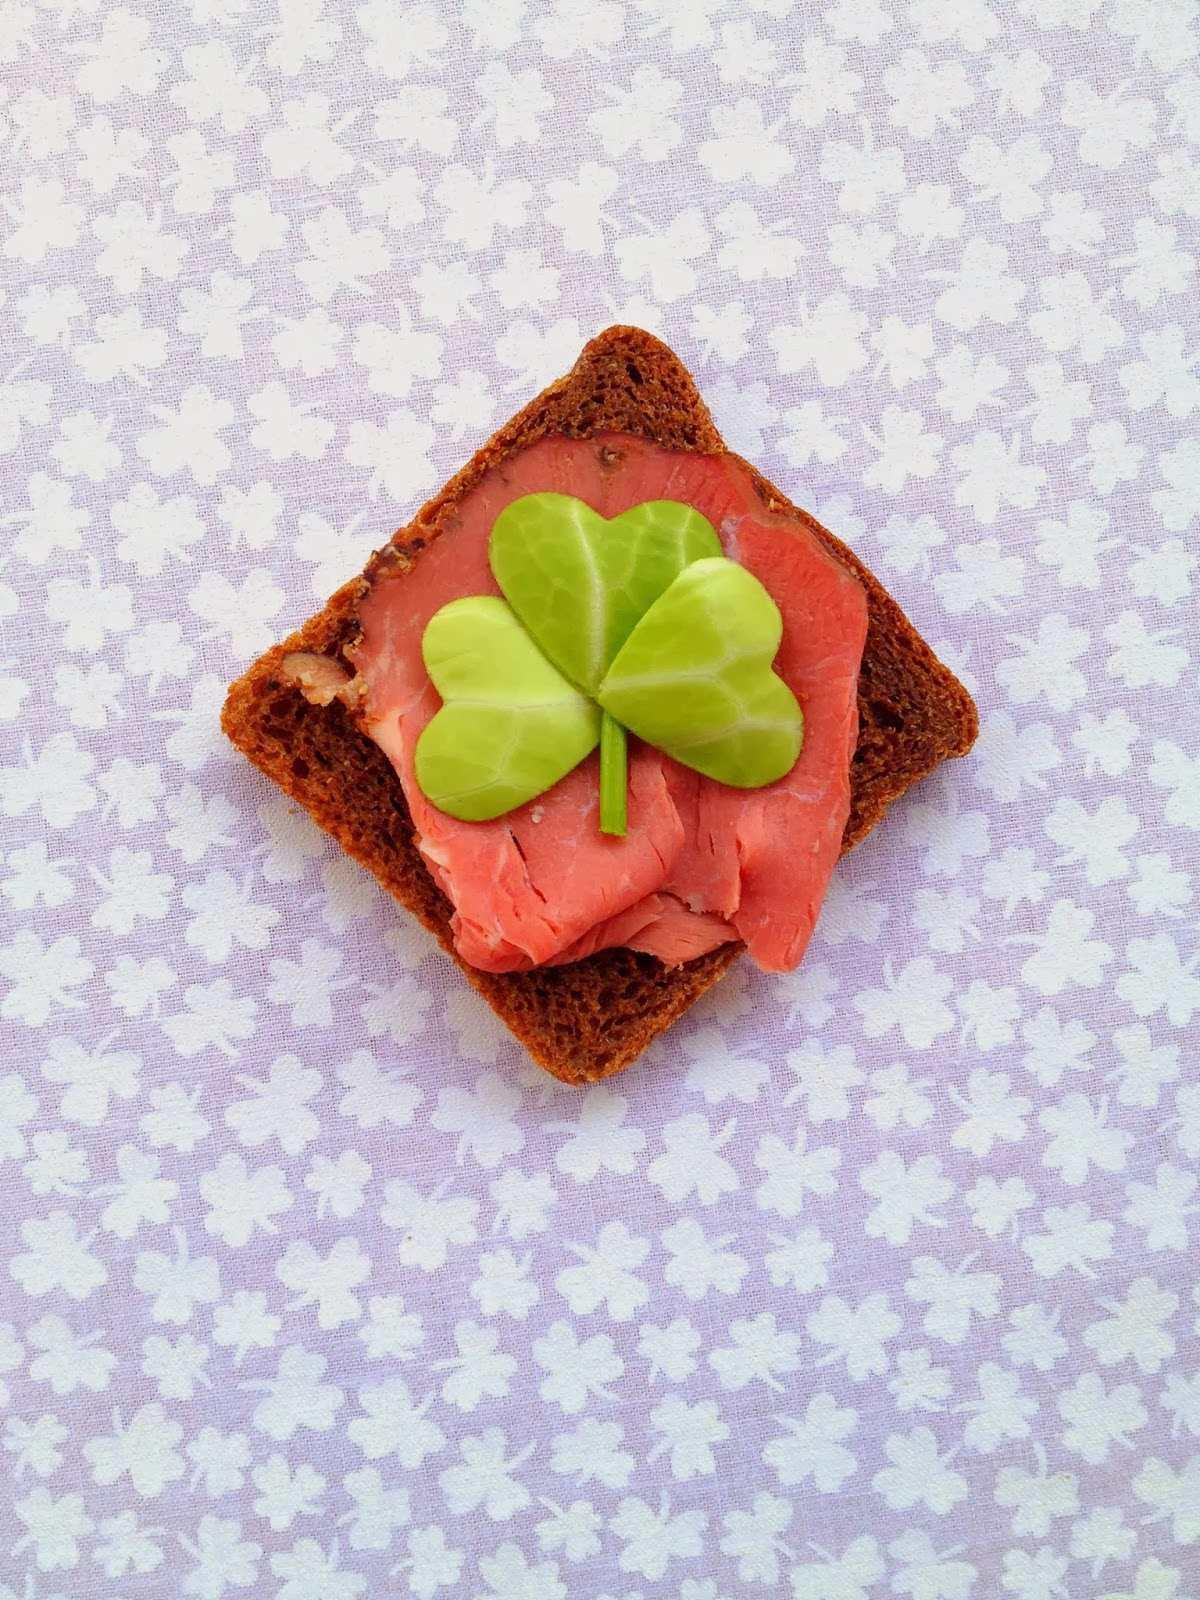 St. Patrick's Day Corned Beef & Cabbage appetizer